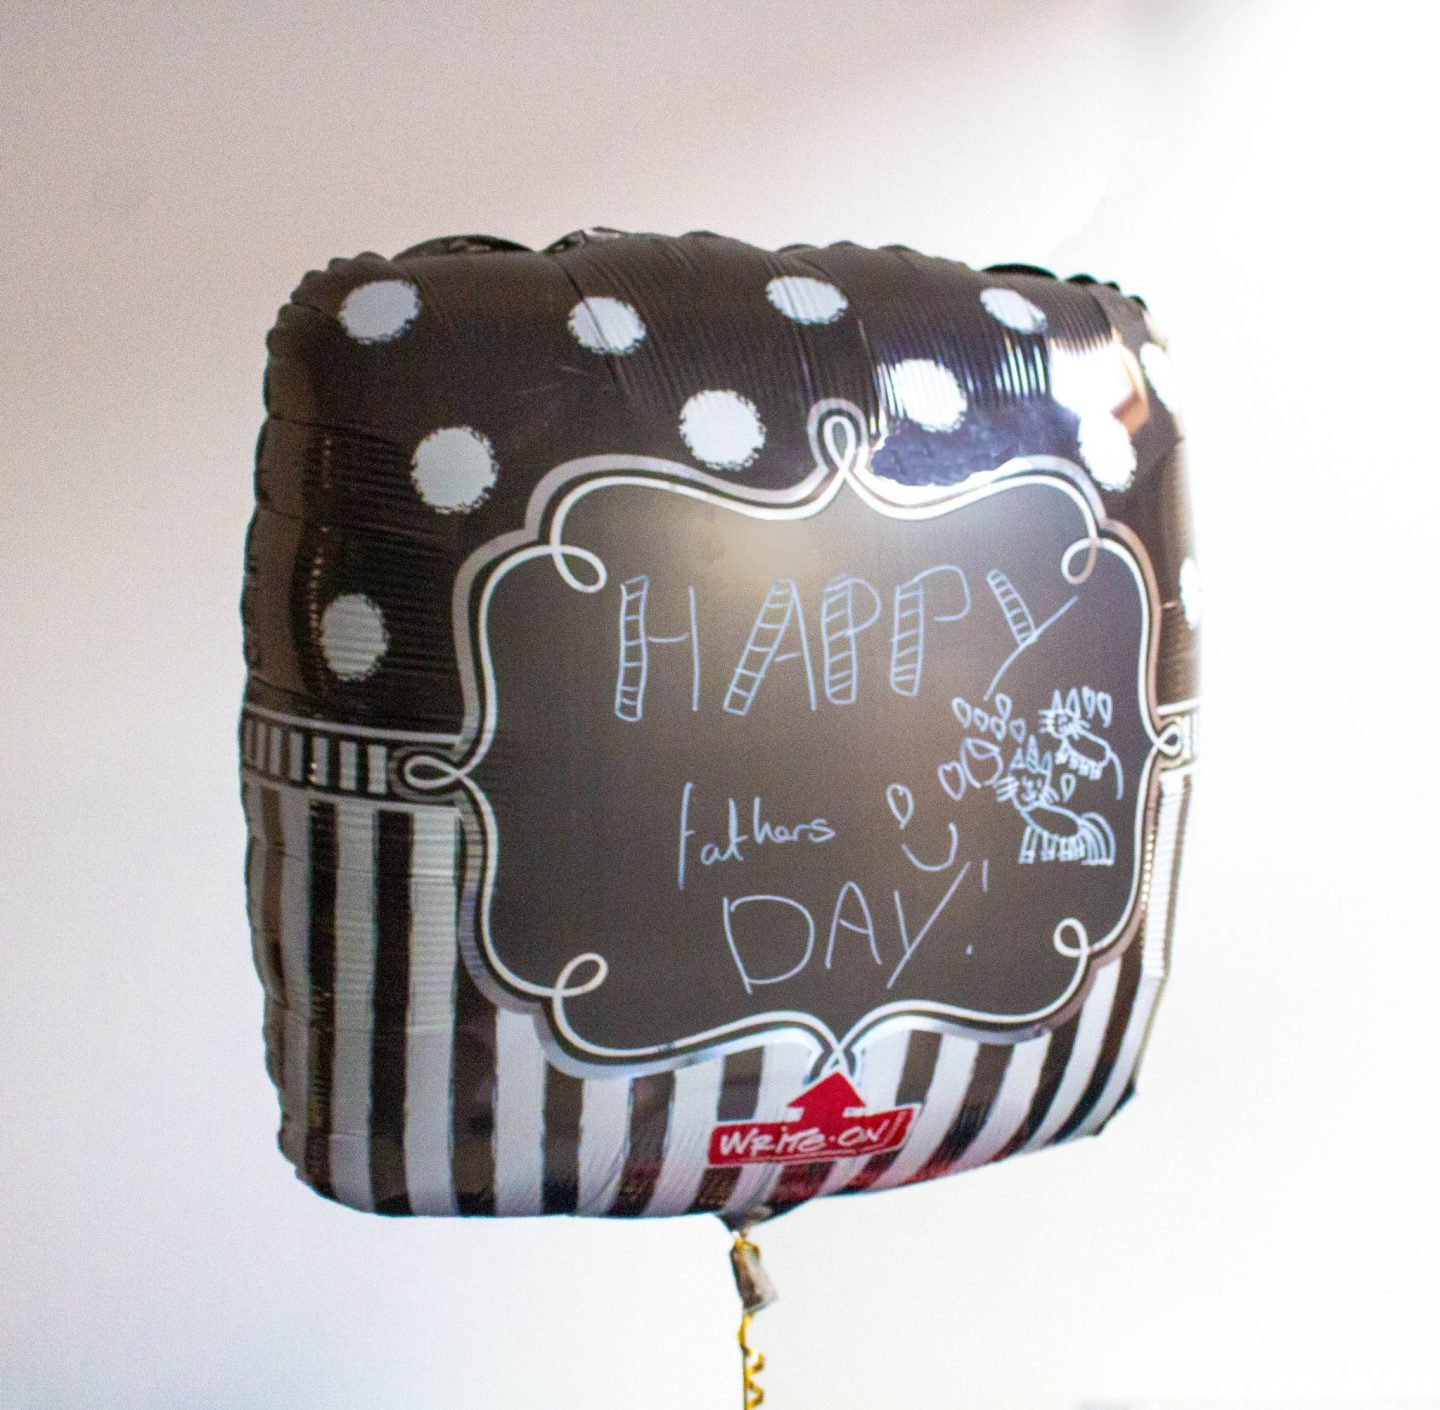 Happy father's Day, Father's Day, father's day gift, Father's Day gifts, dad blog, dadbloguk.com, balloon